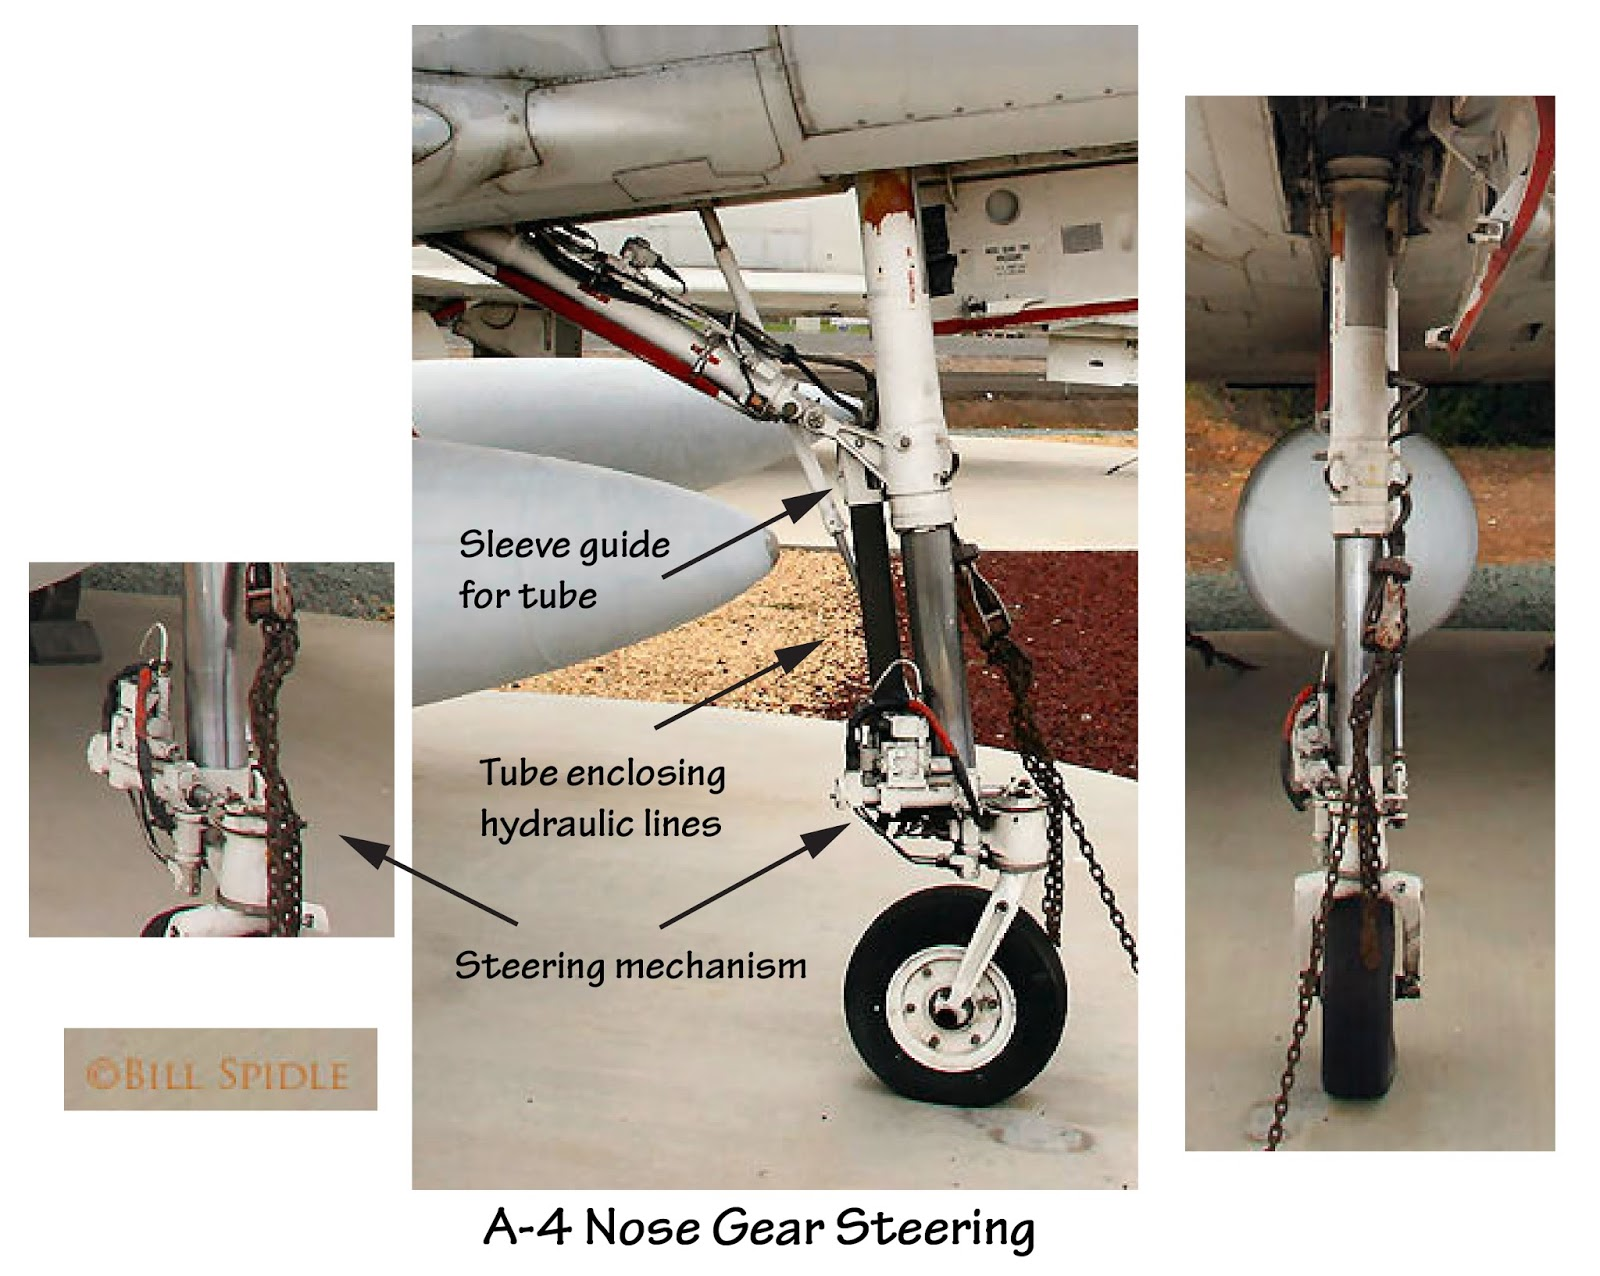 Tailhook Topics: A-4 Nose Gear Steering